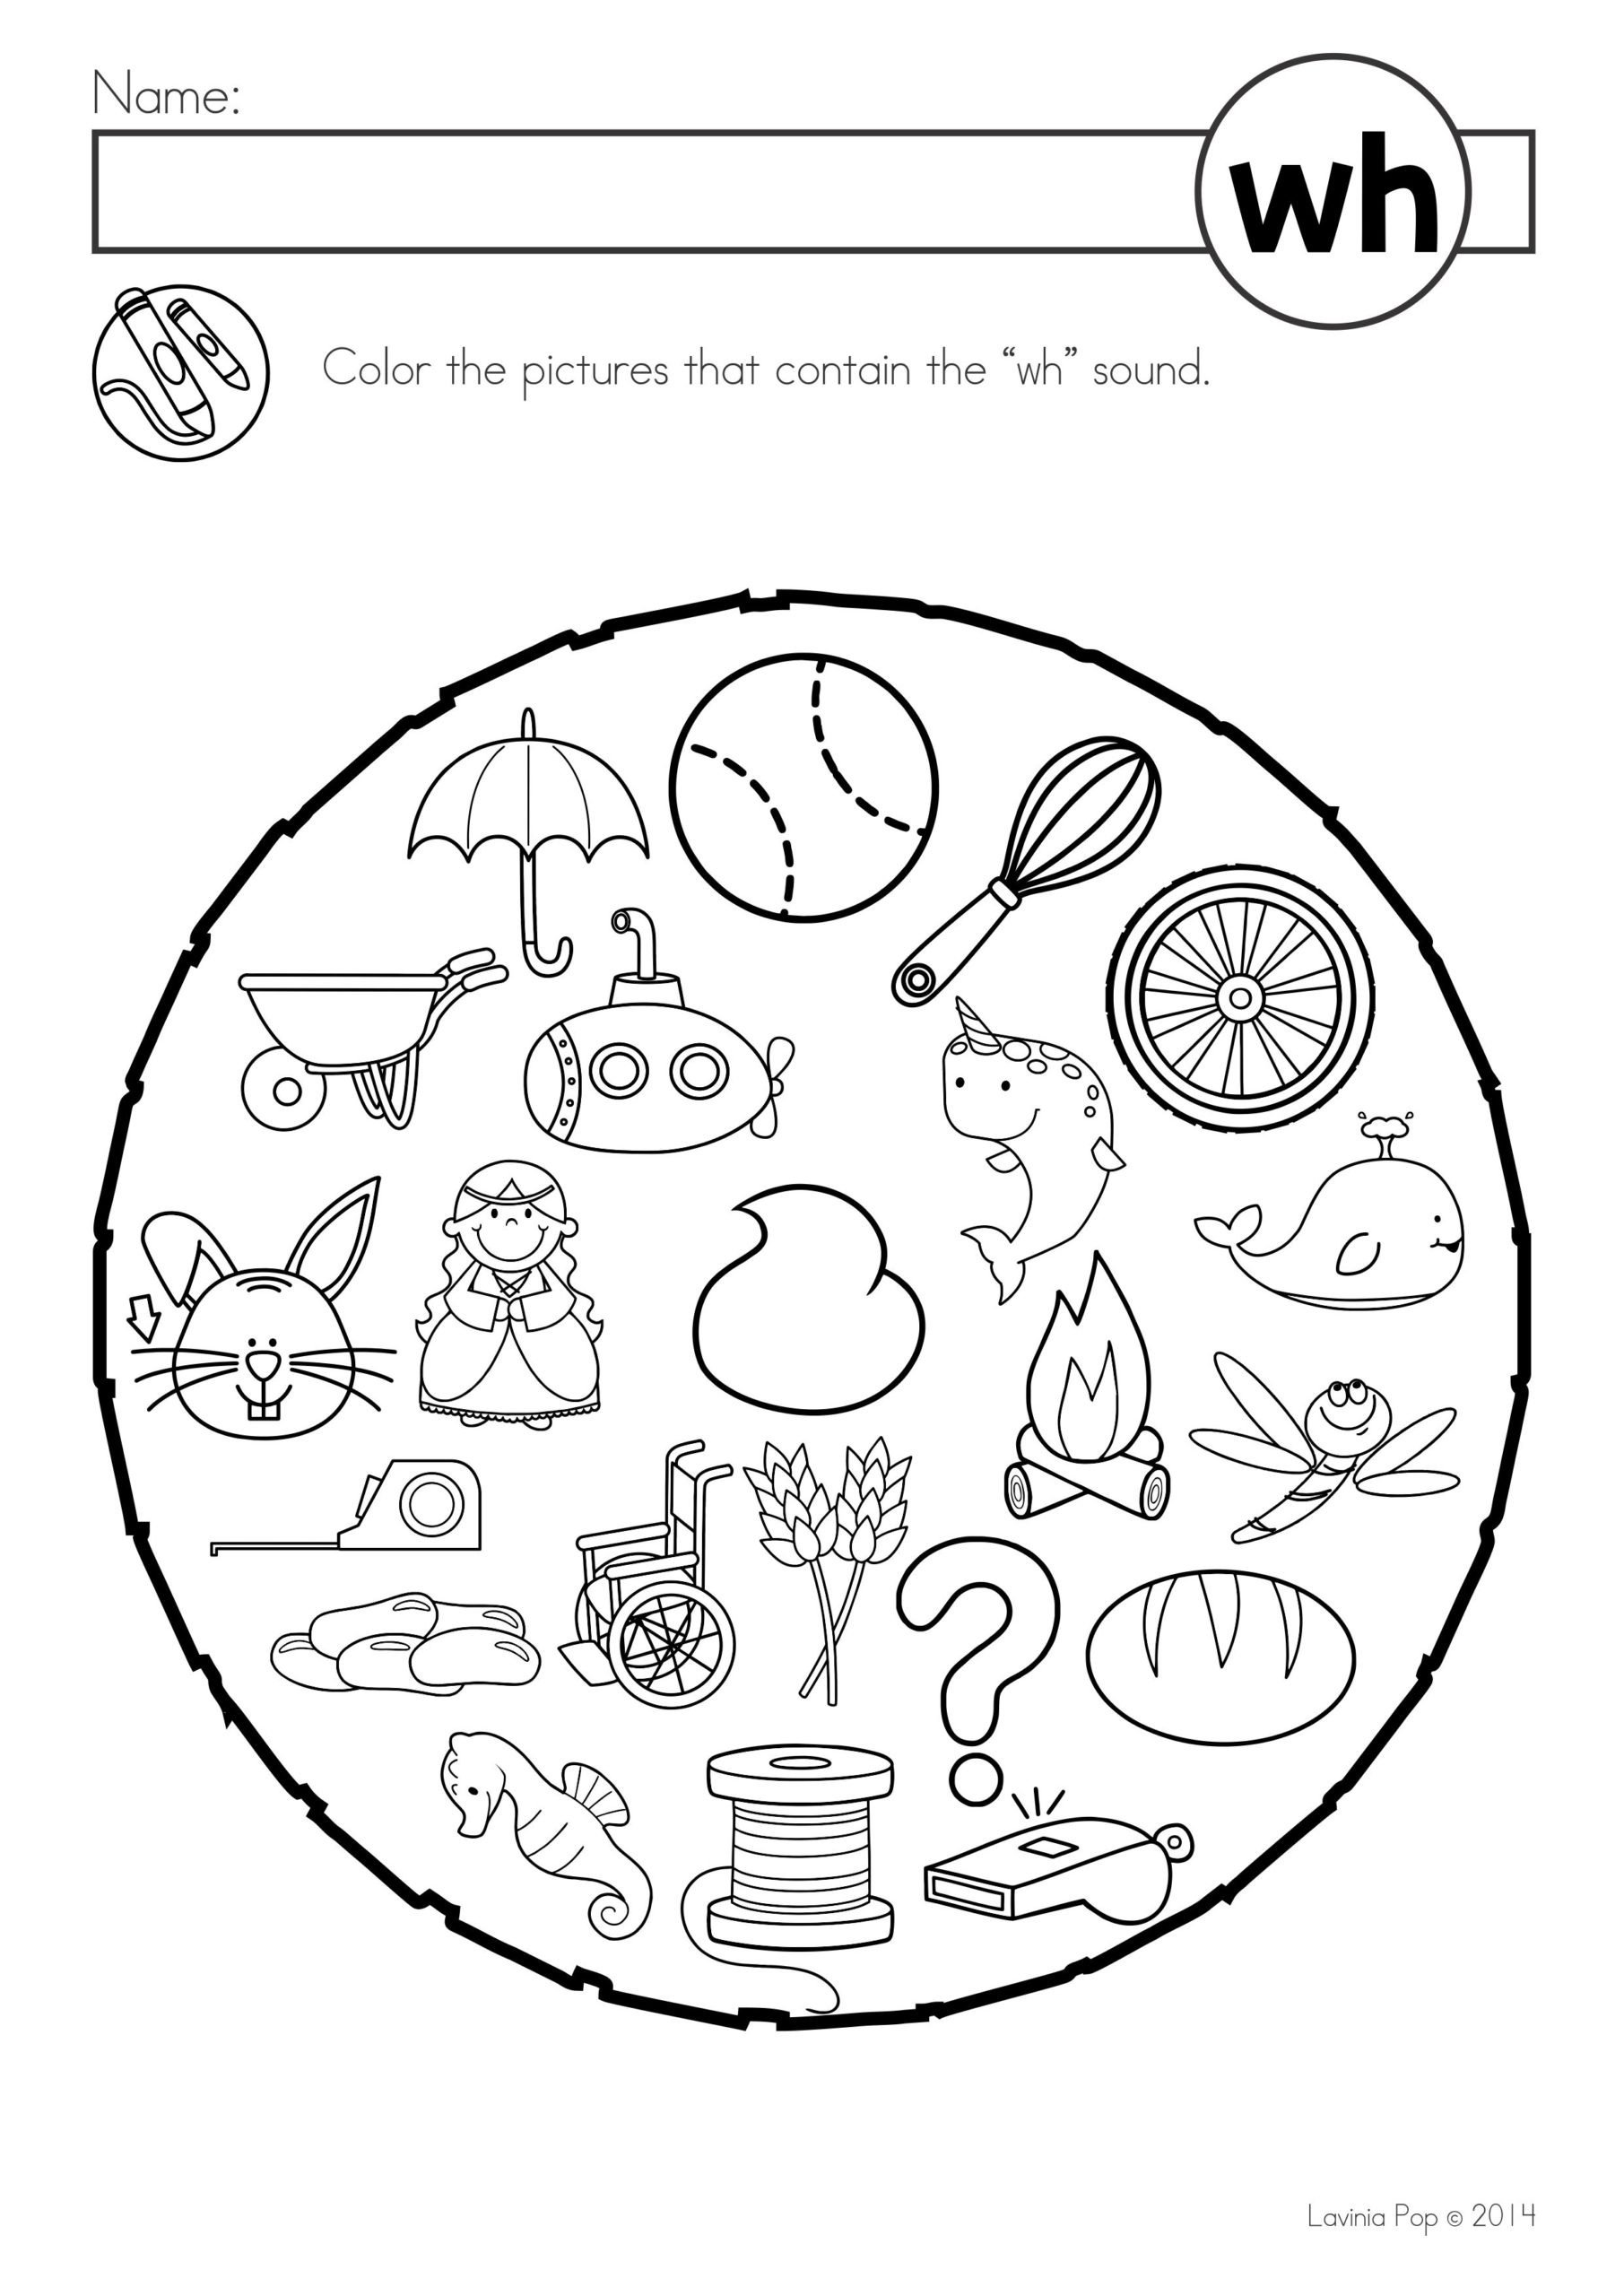 Wh Worksheets for Kindergarten Free Digraph Wh Phonics Word Work Multiple Phonograms